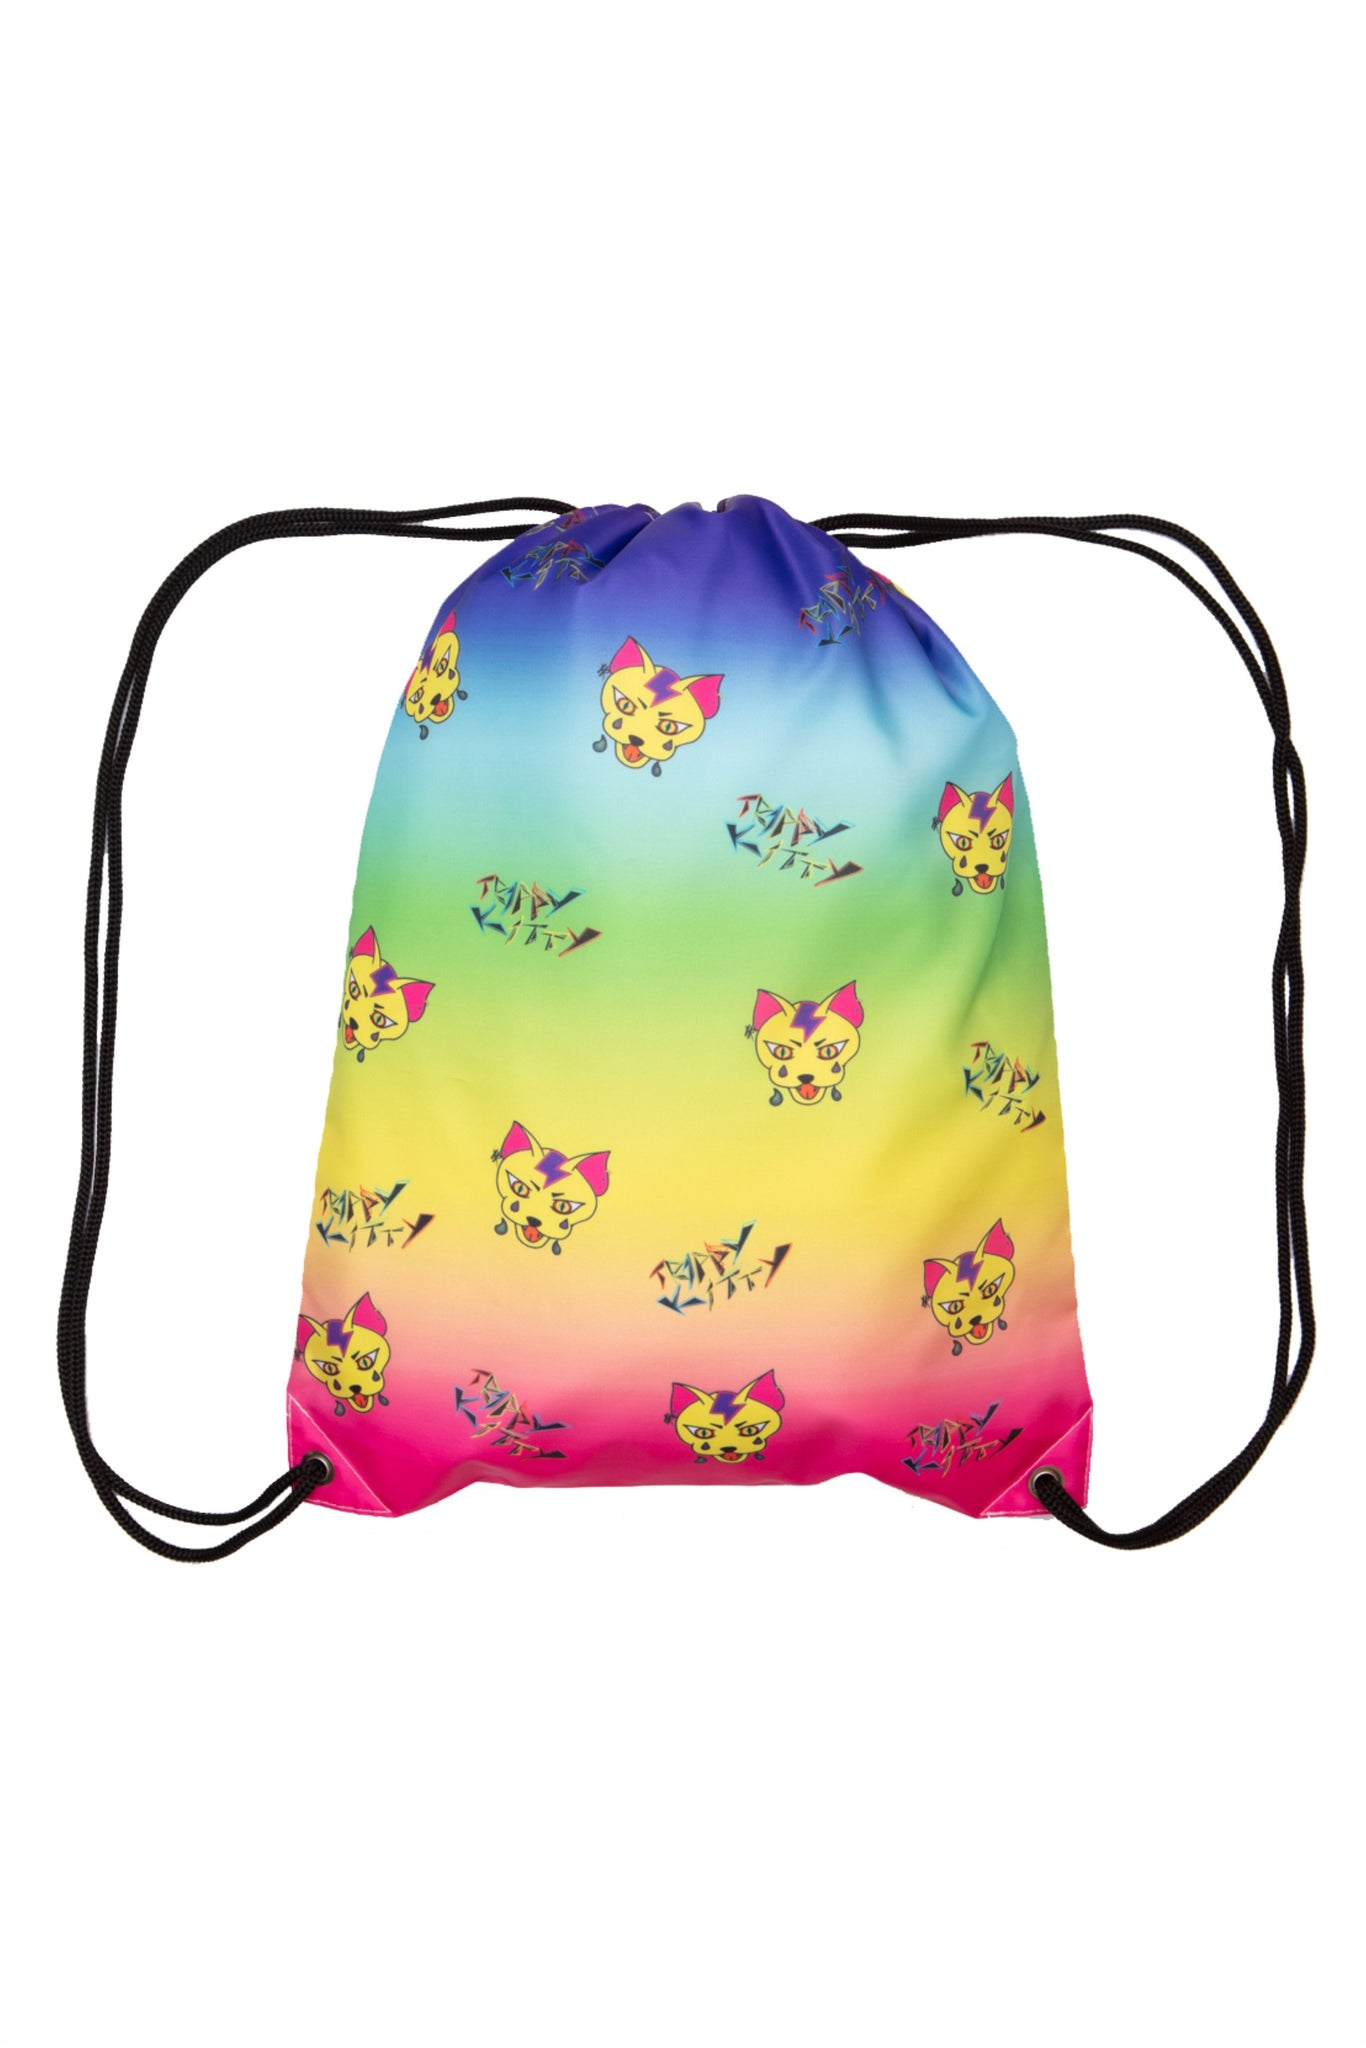 Trippy Kitty Backpacks